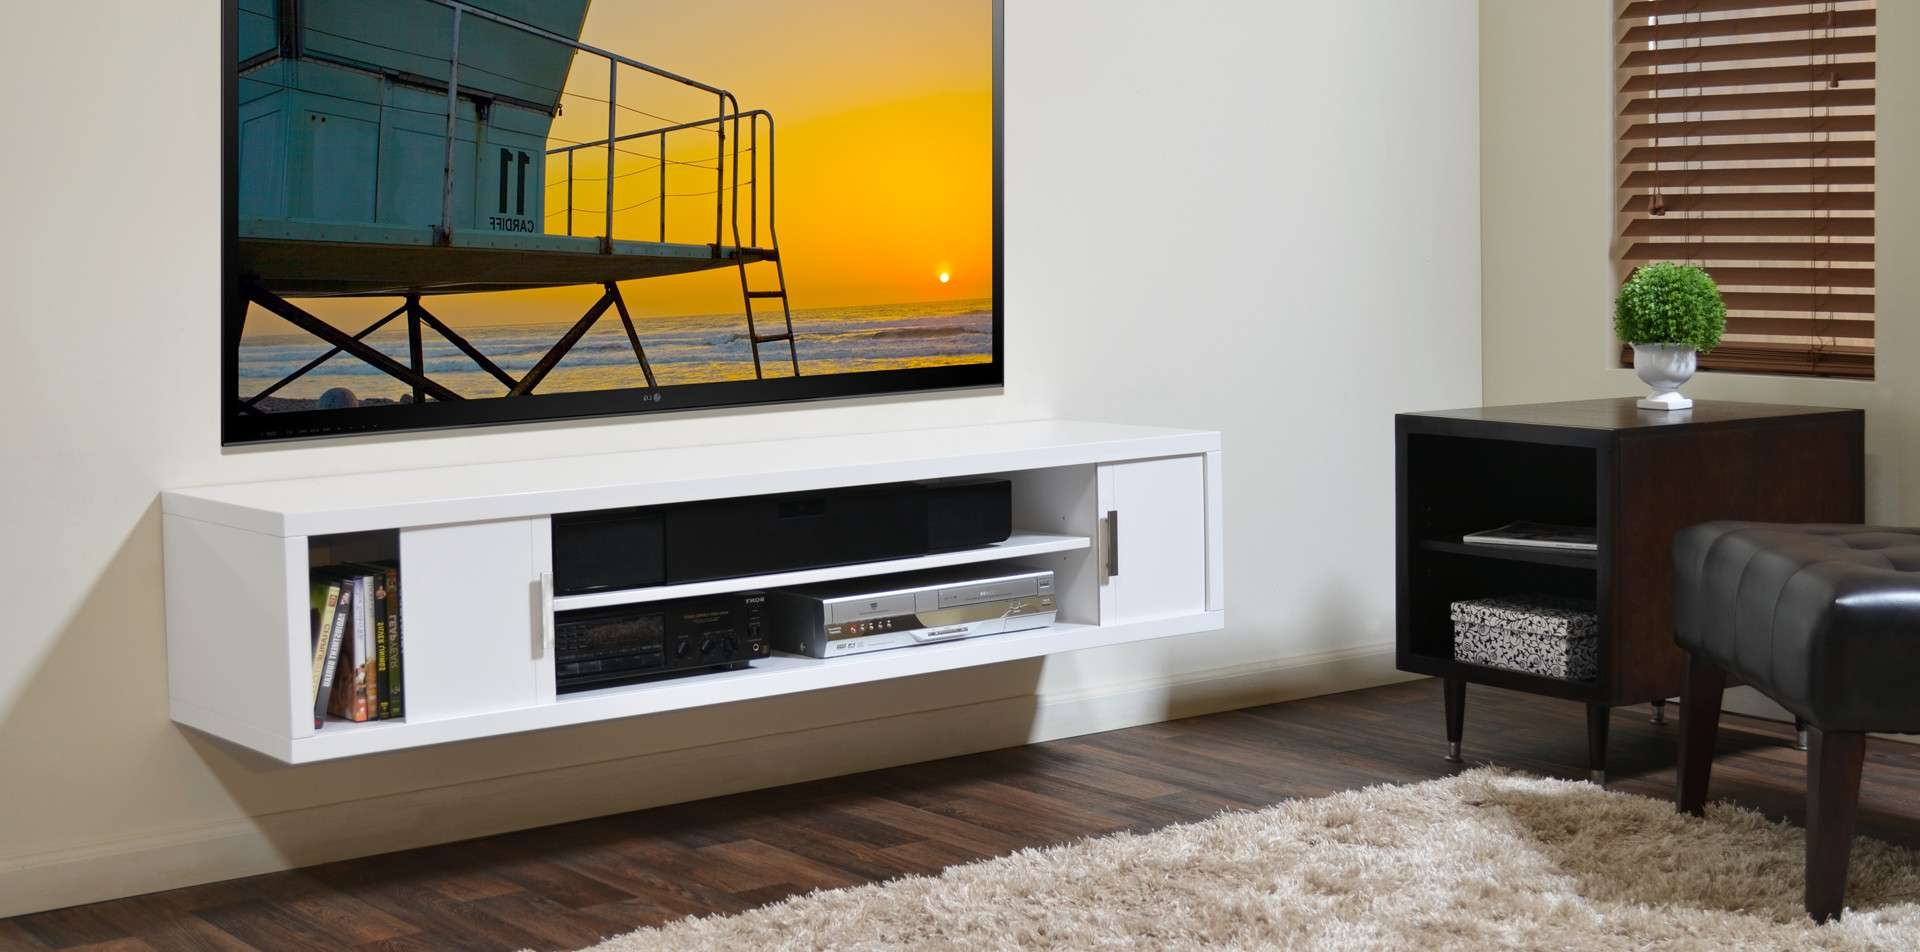 Long Wood Wall Mounted Media Shelf And Cabinet Tv Stand – Decofurnish With Regard To White Wall Mounted Tv Stands (View 6 of 15)